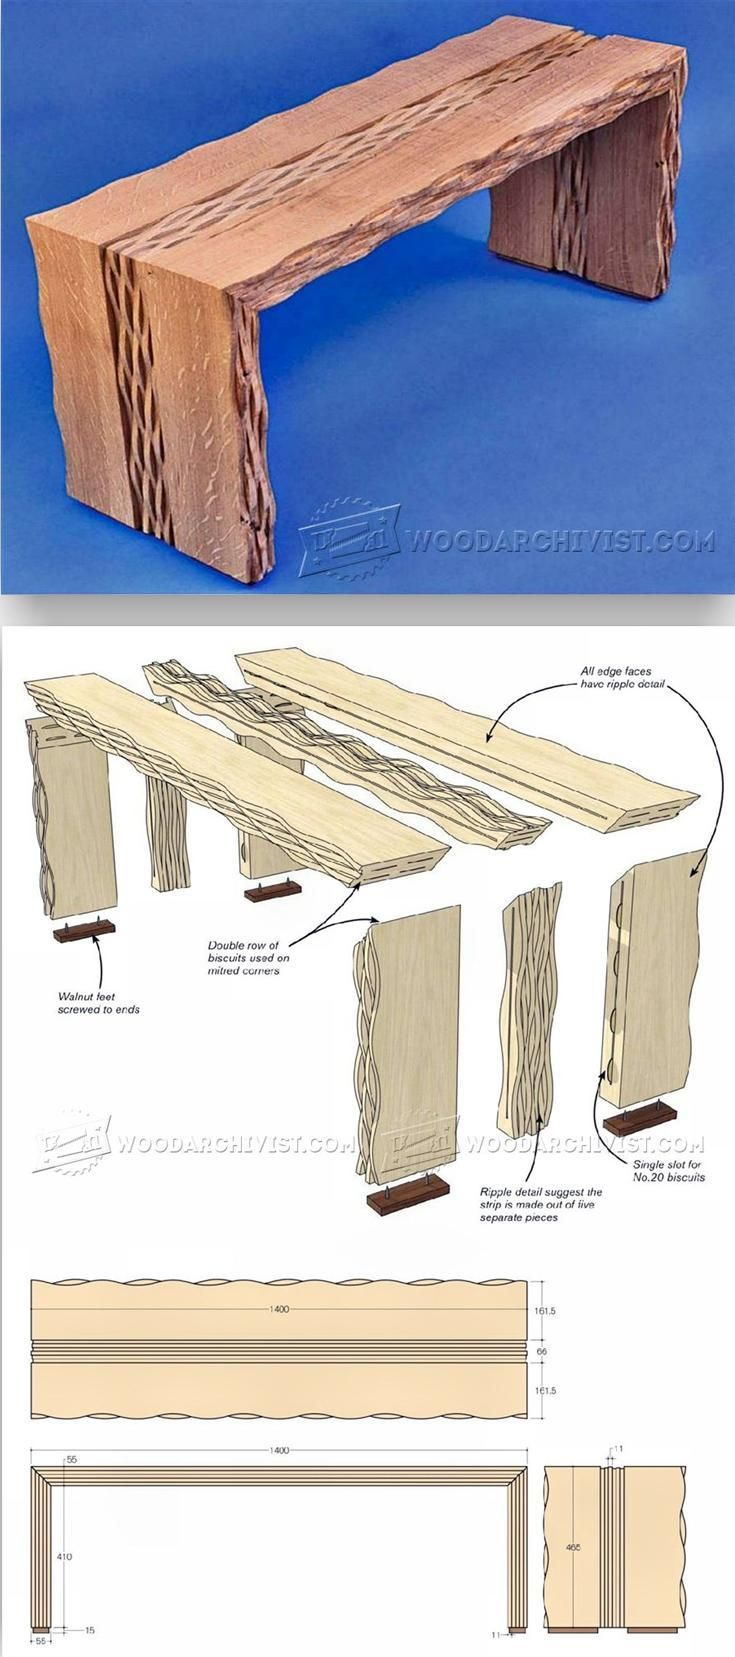 Rippled Oak Bench Plans - Furniture Plans and Projects | WoodArchivist.com